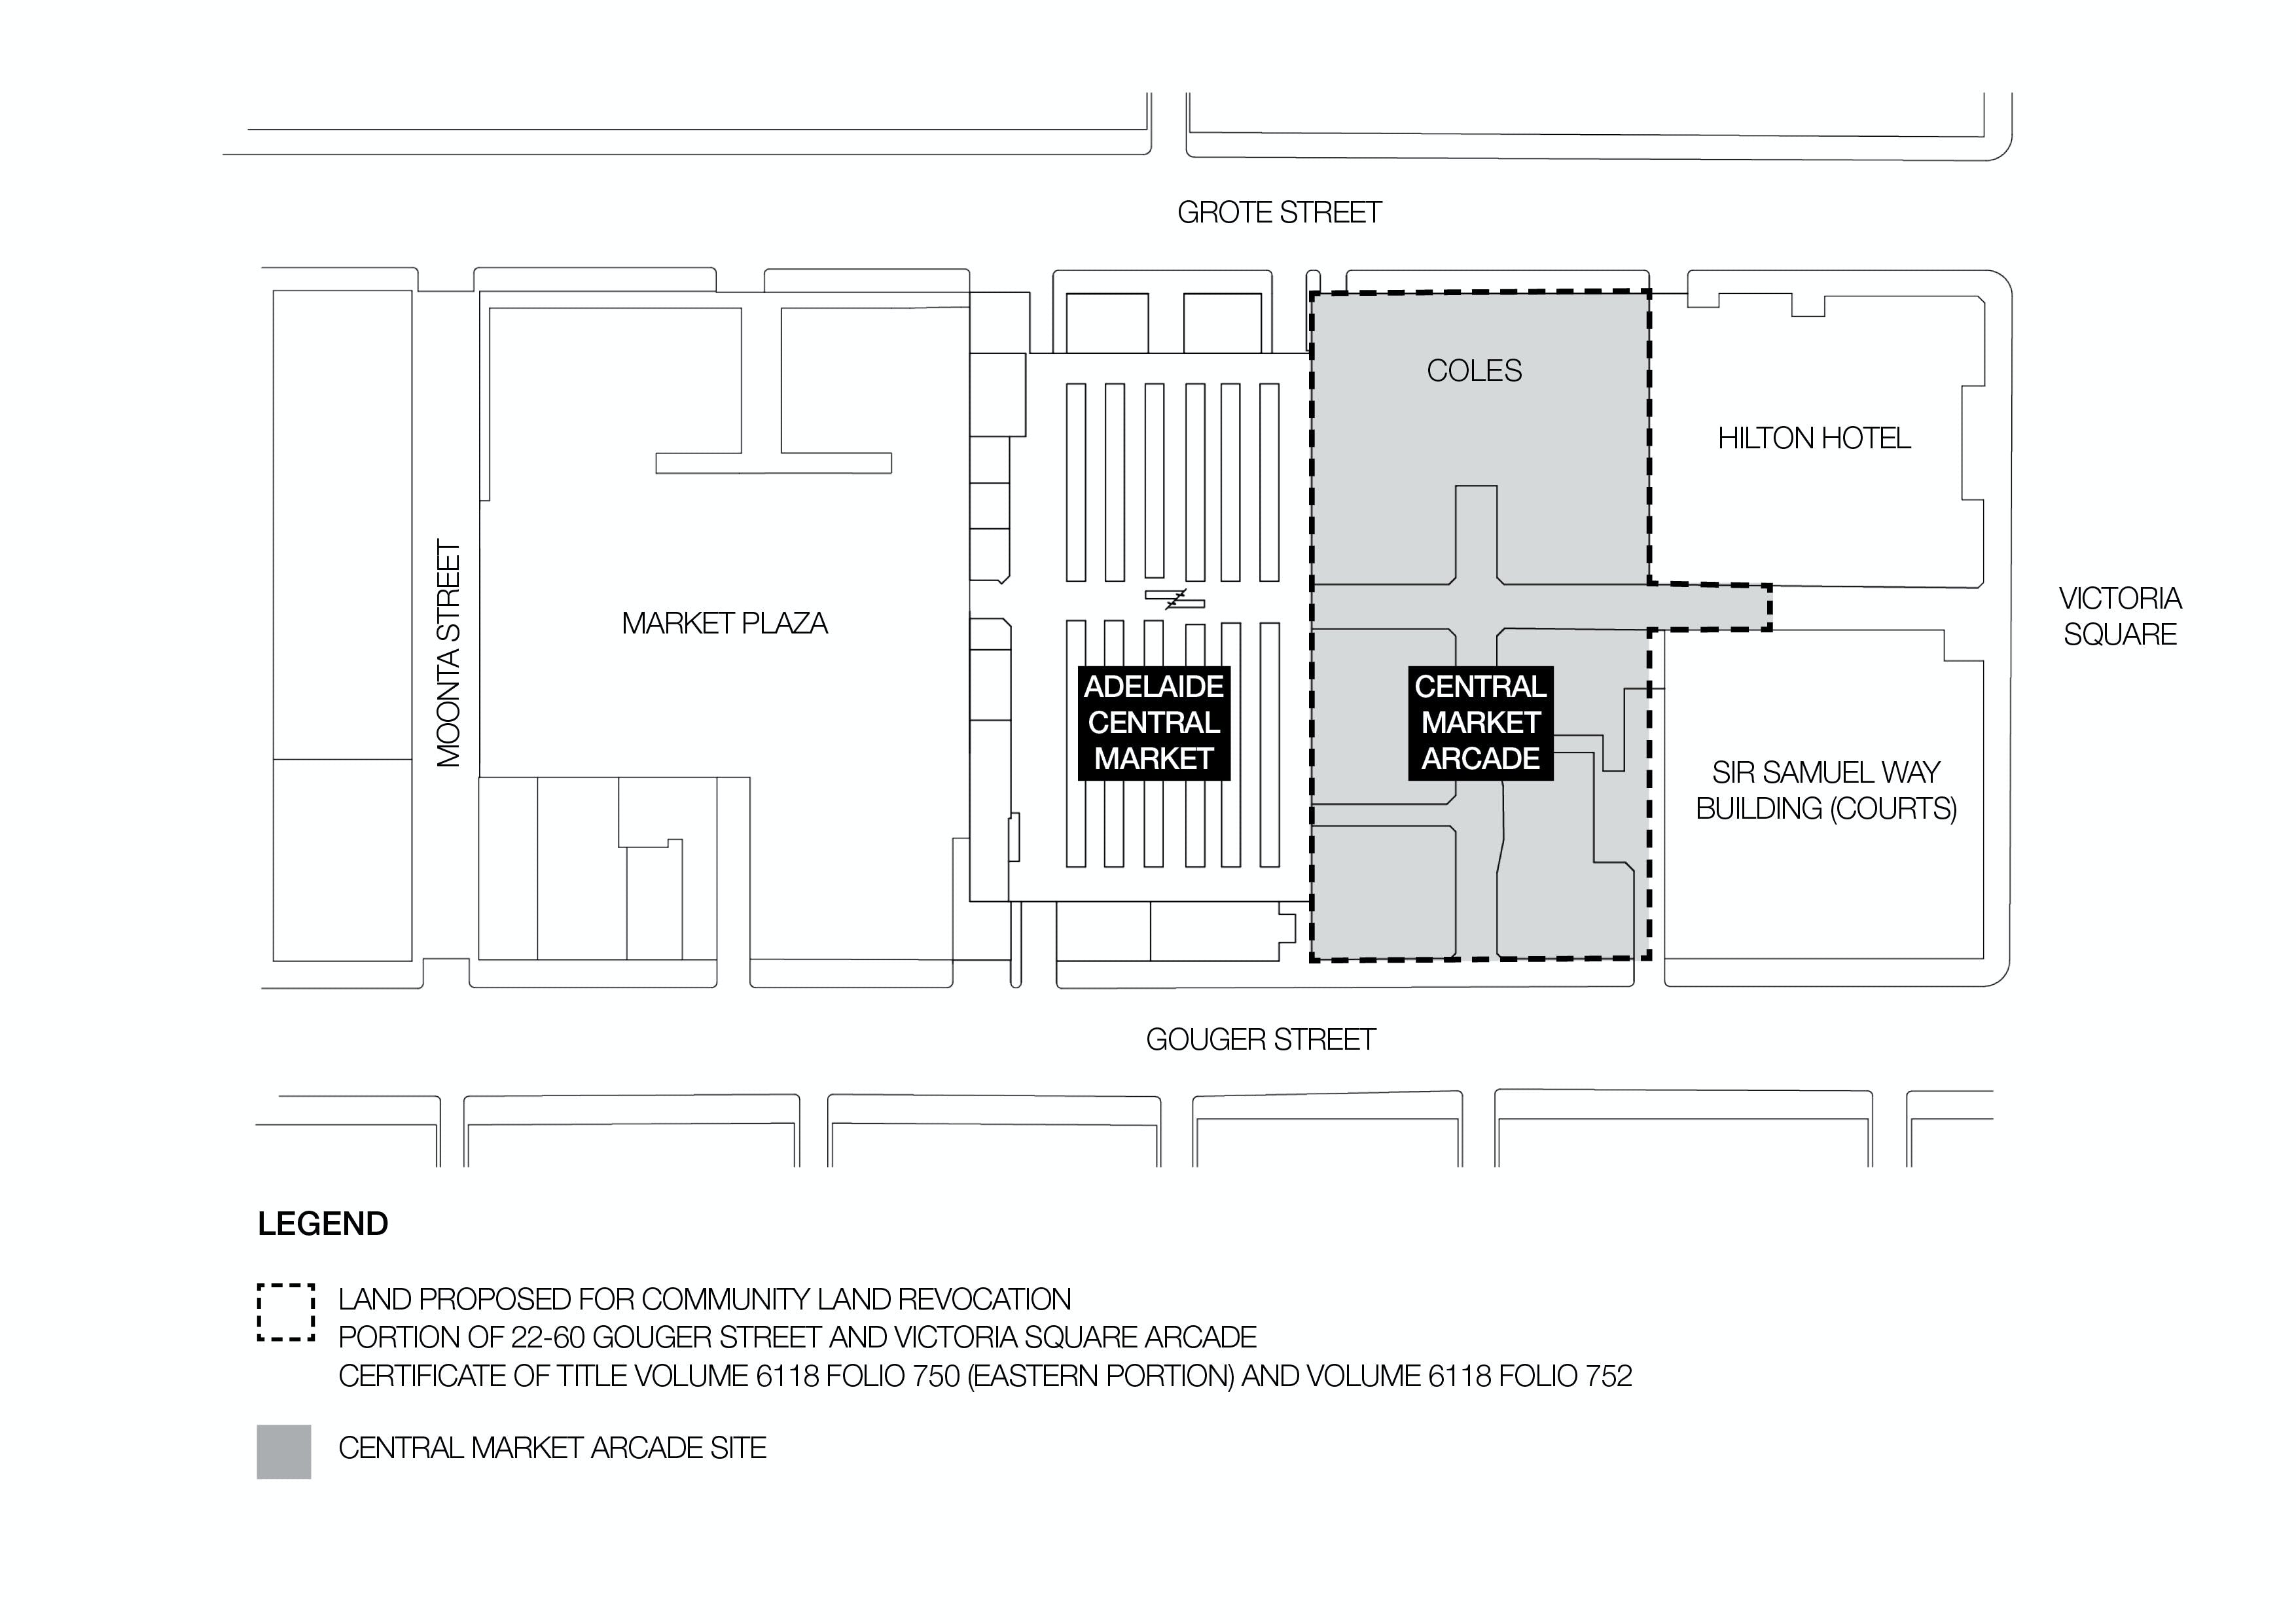 Plan Showing Affected Land   Community Land Revocation   Central Market Arcade